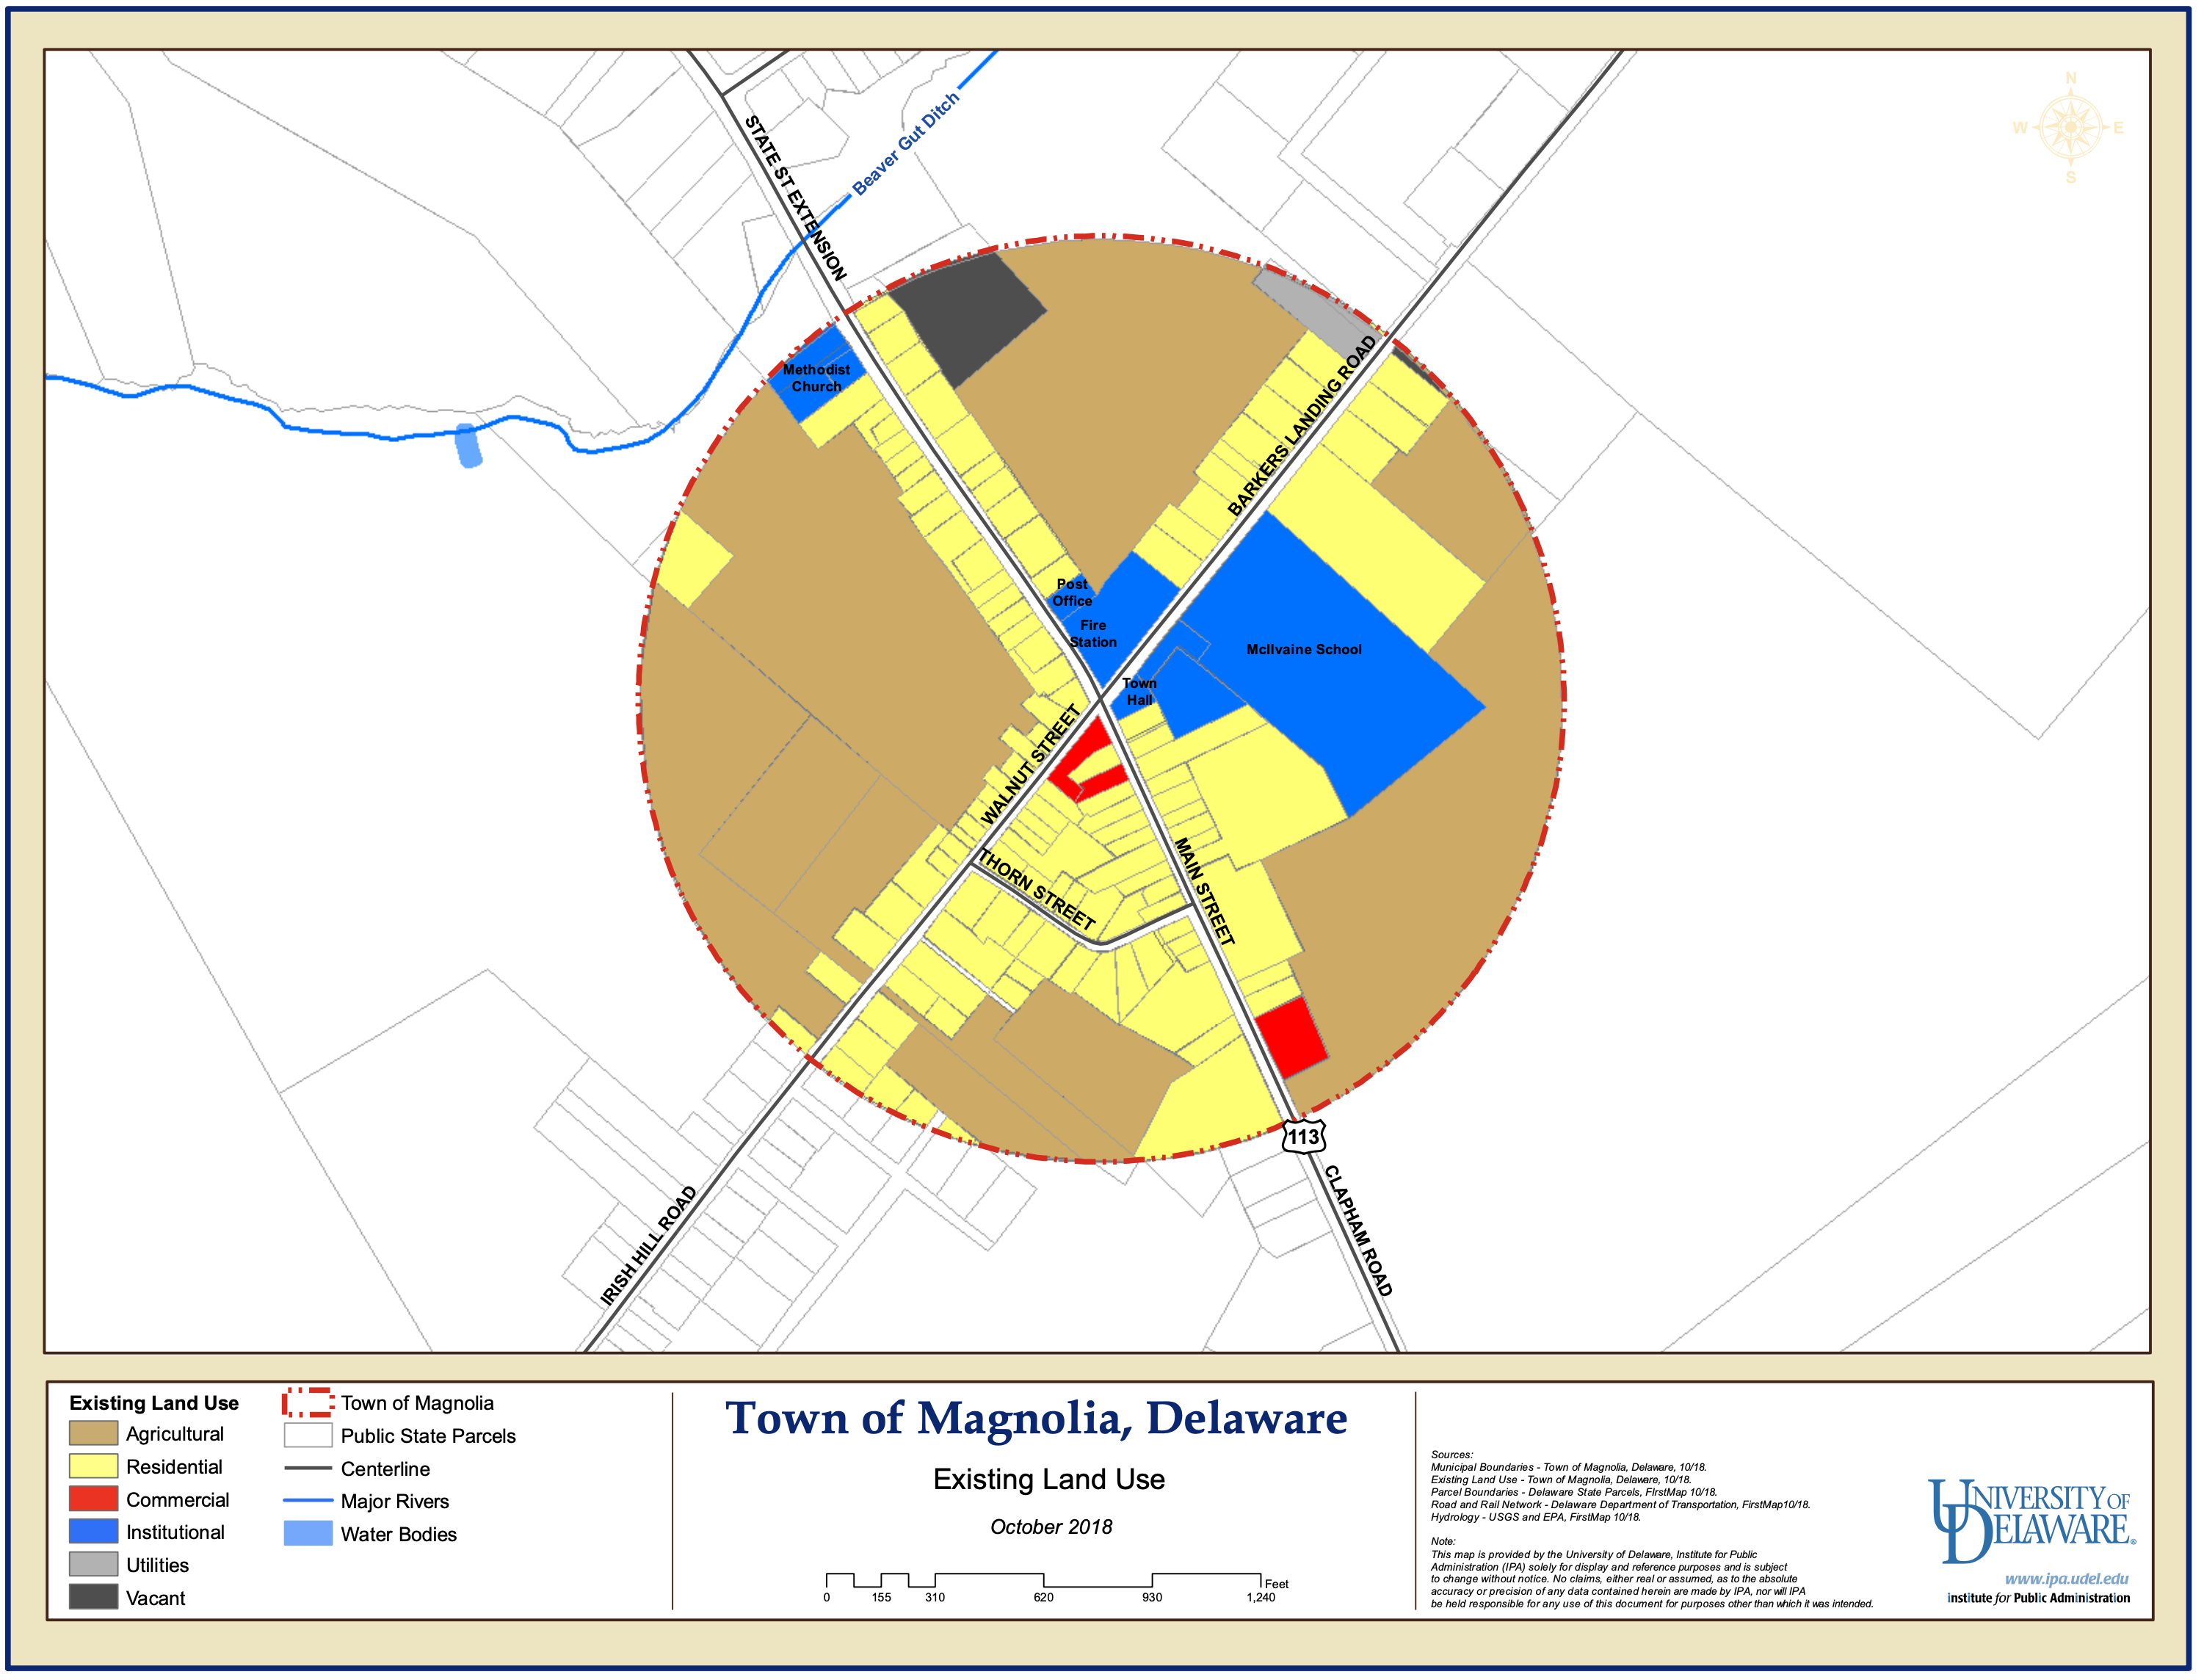 Map of the Town of Magnolia, Delaware - Existing Land Use from October 2018